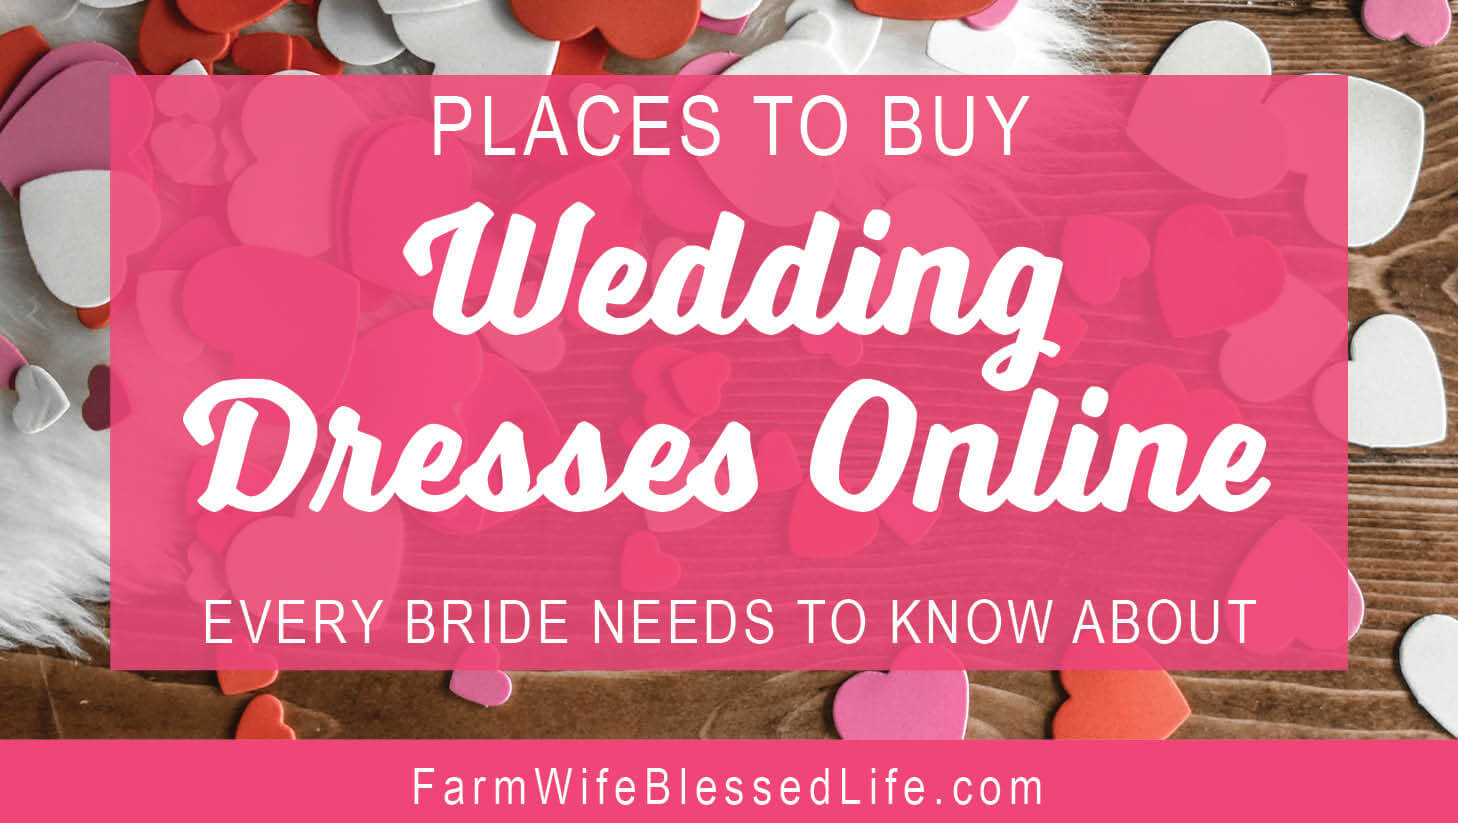 Places to Buy Wedding Dresses Online